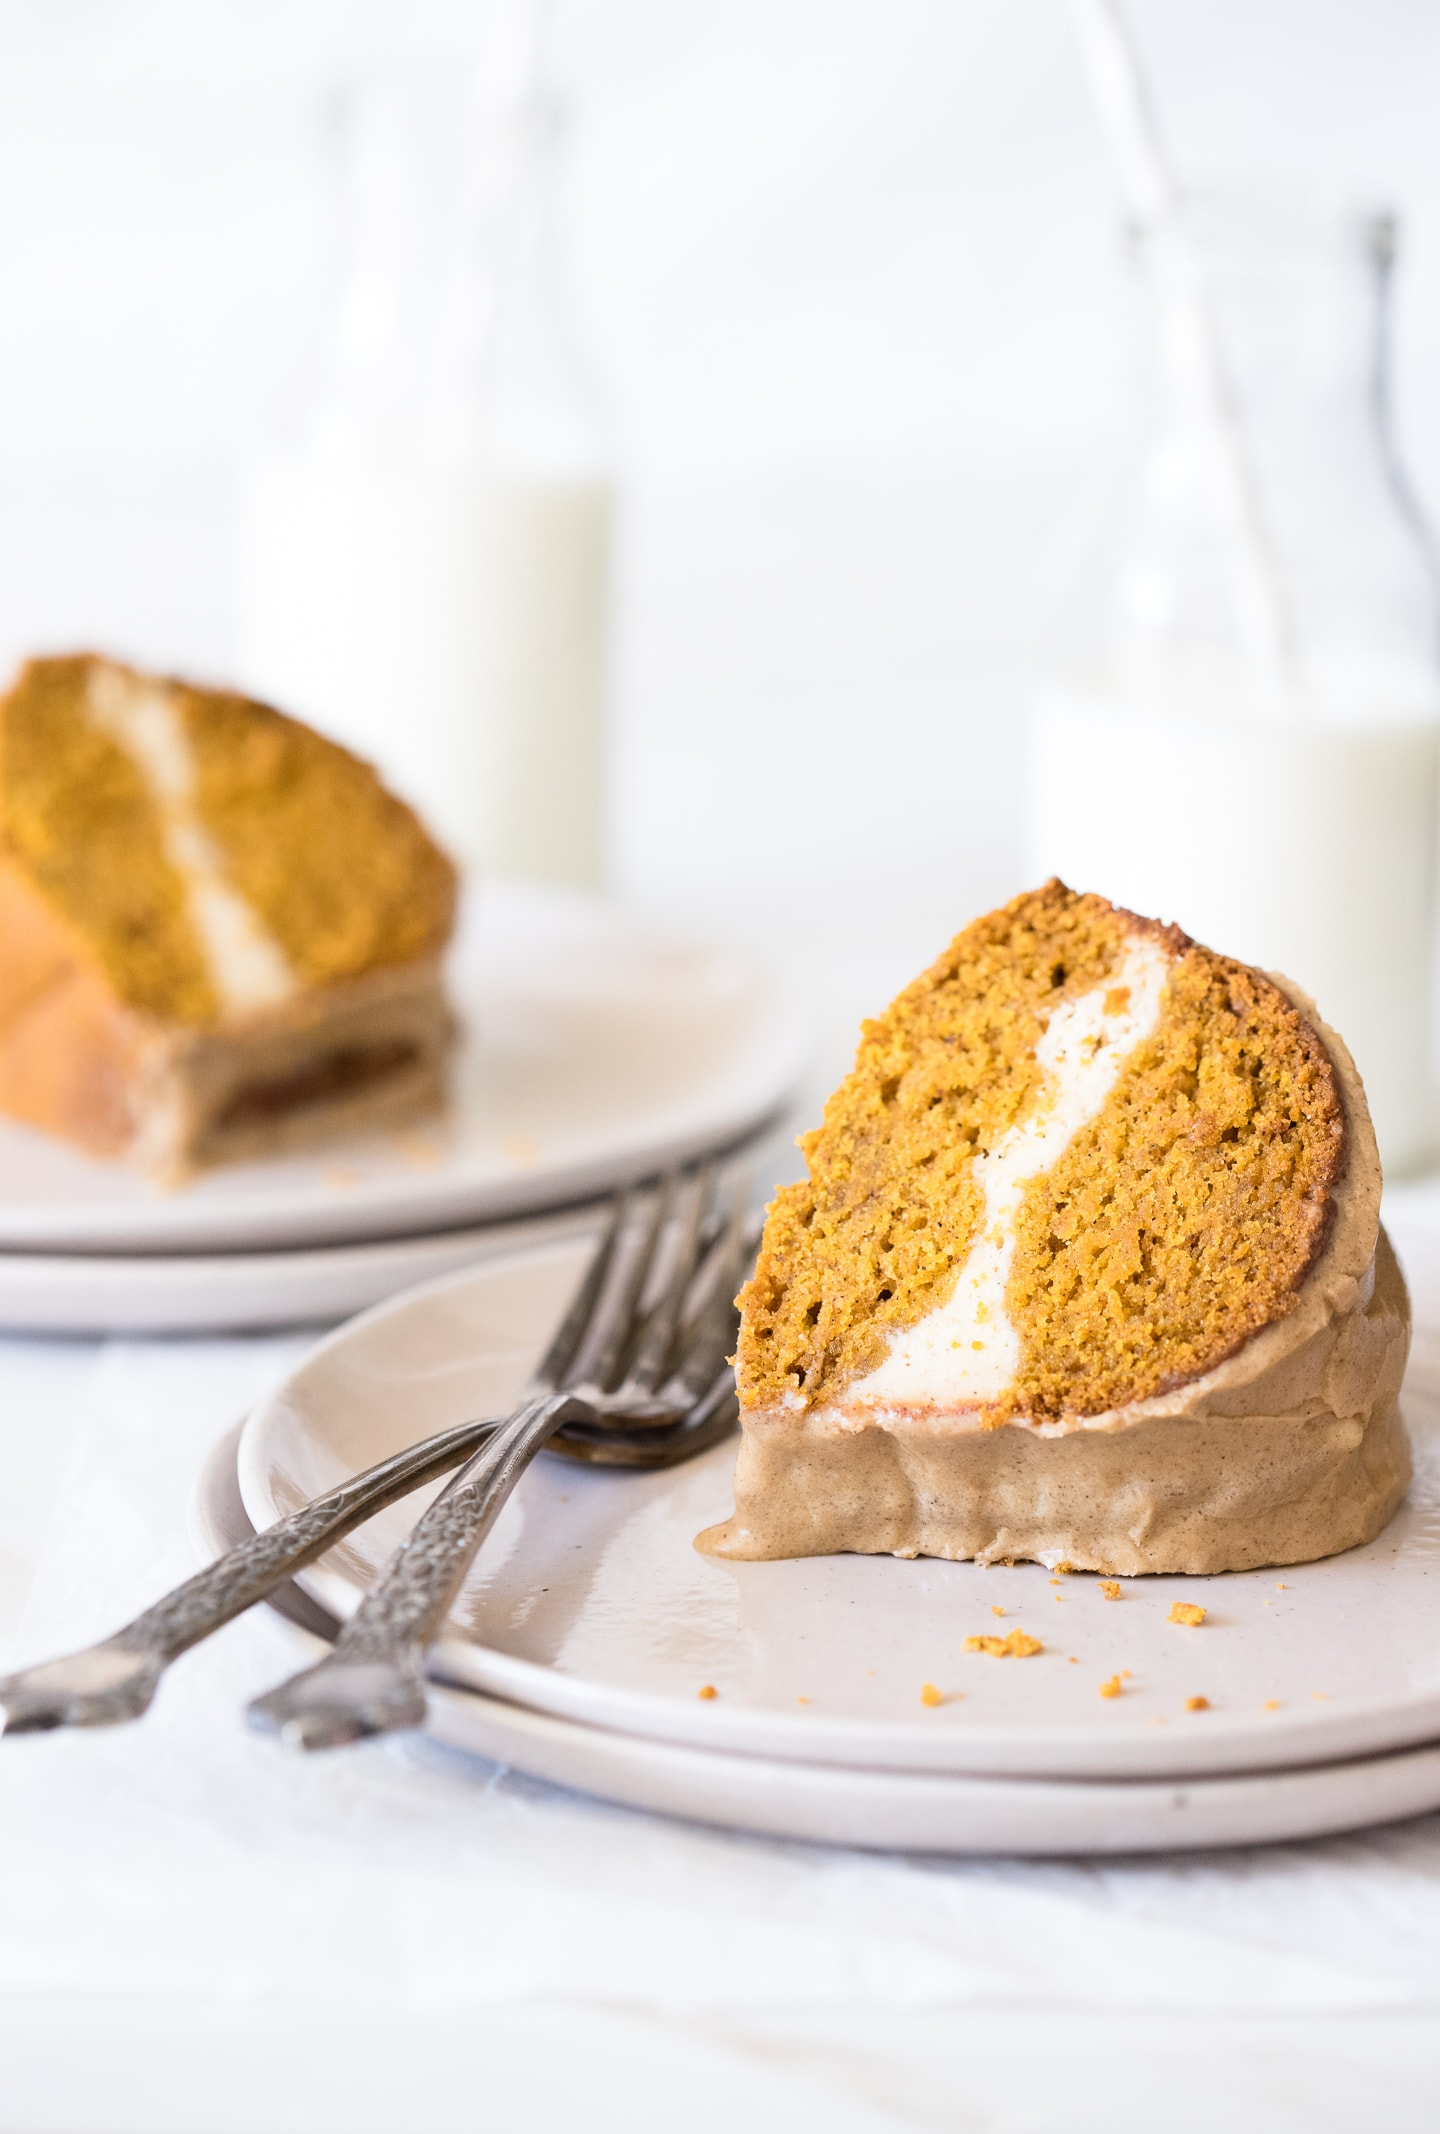 Two slices of pumpkin bundt cake on cream-colored plates, one in the foreground and one in the background.